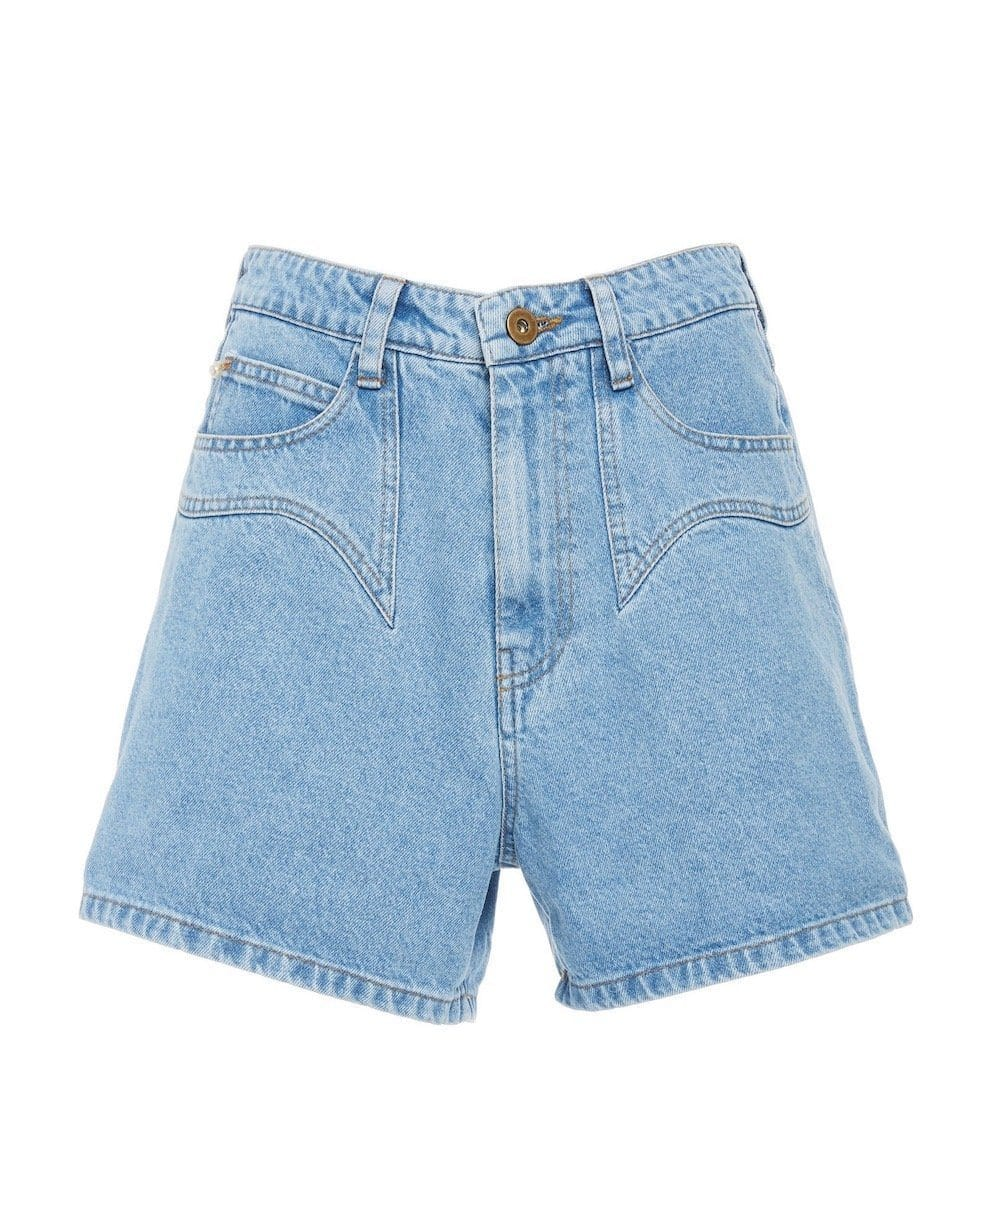 RASA DENIM MINI SHORTS Short NANUSHKA